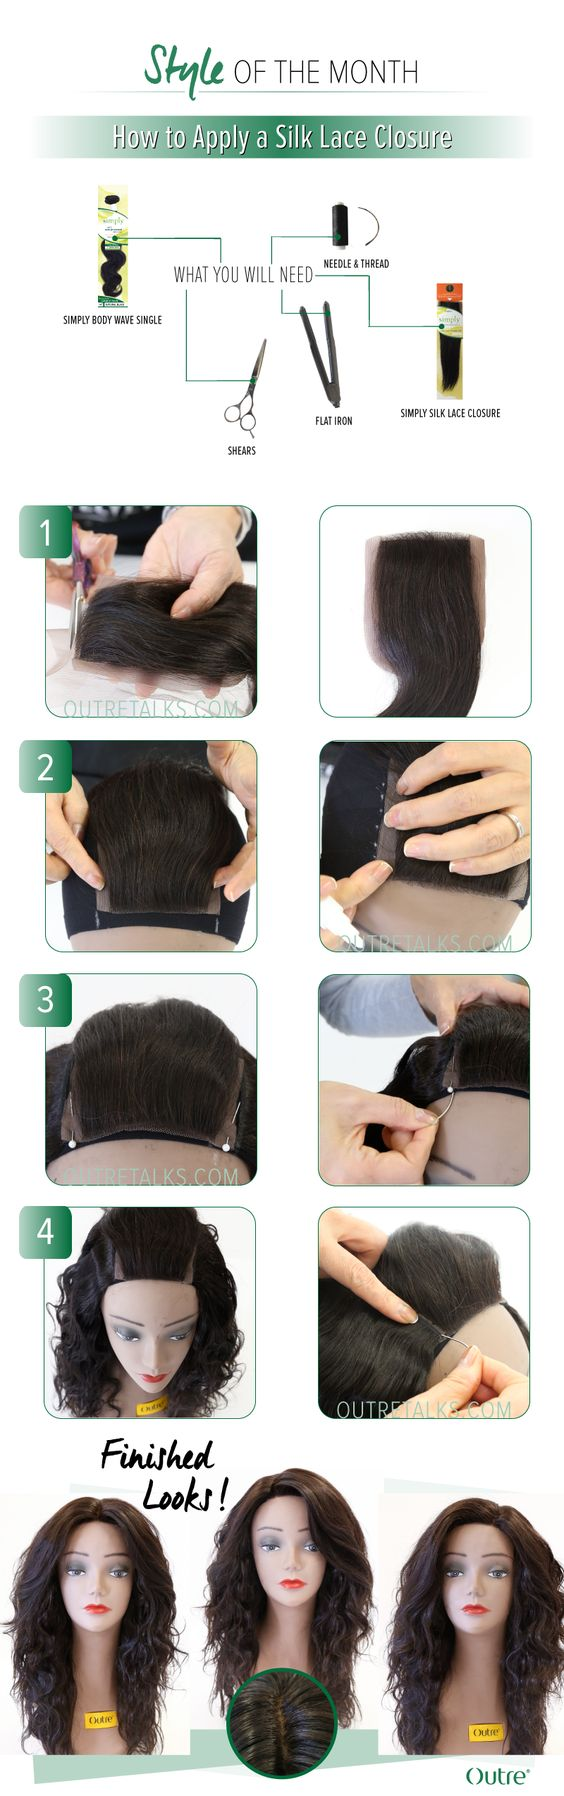 how to apply a silk lace closure